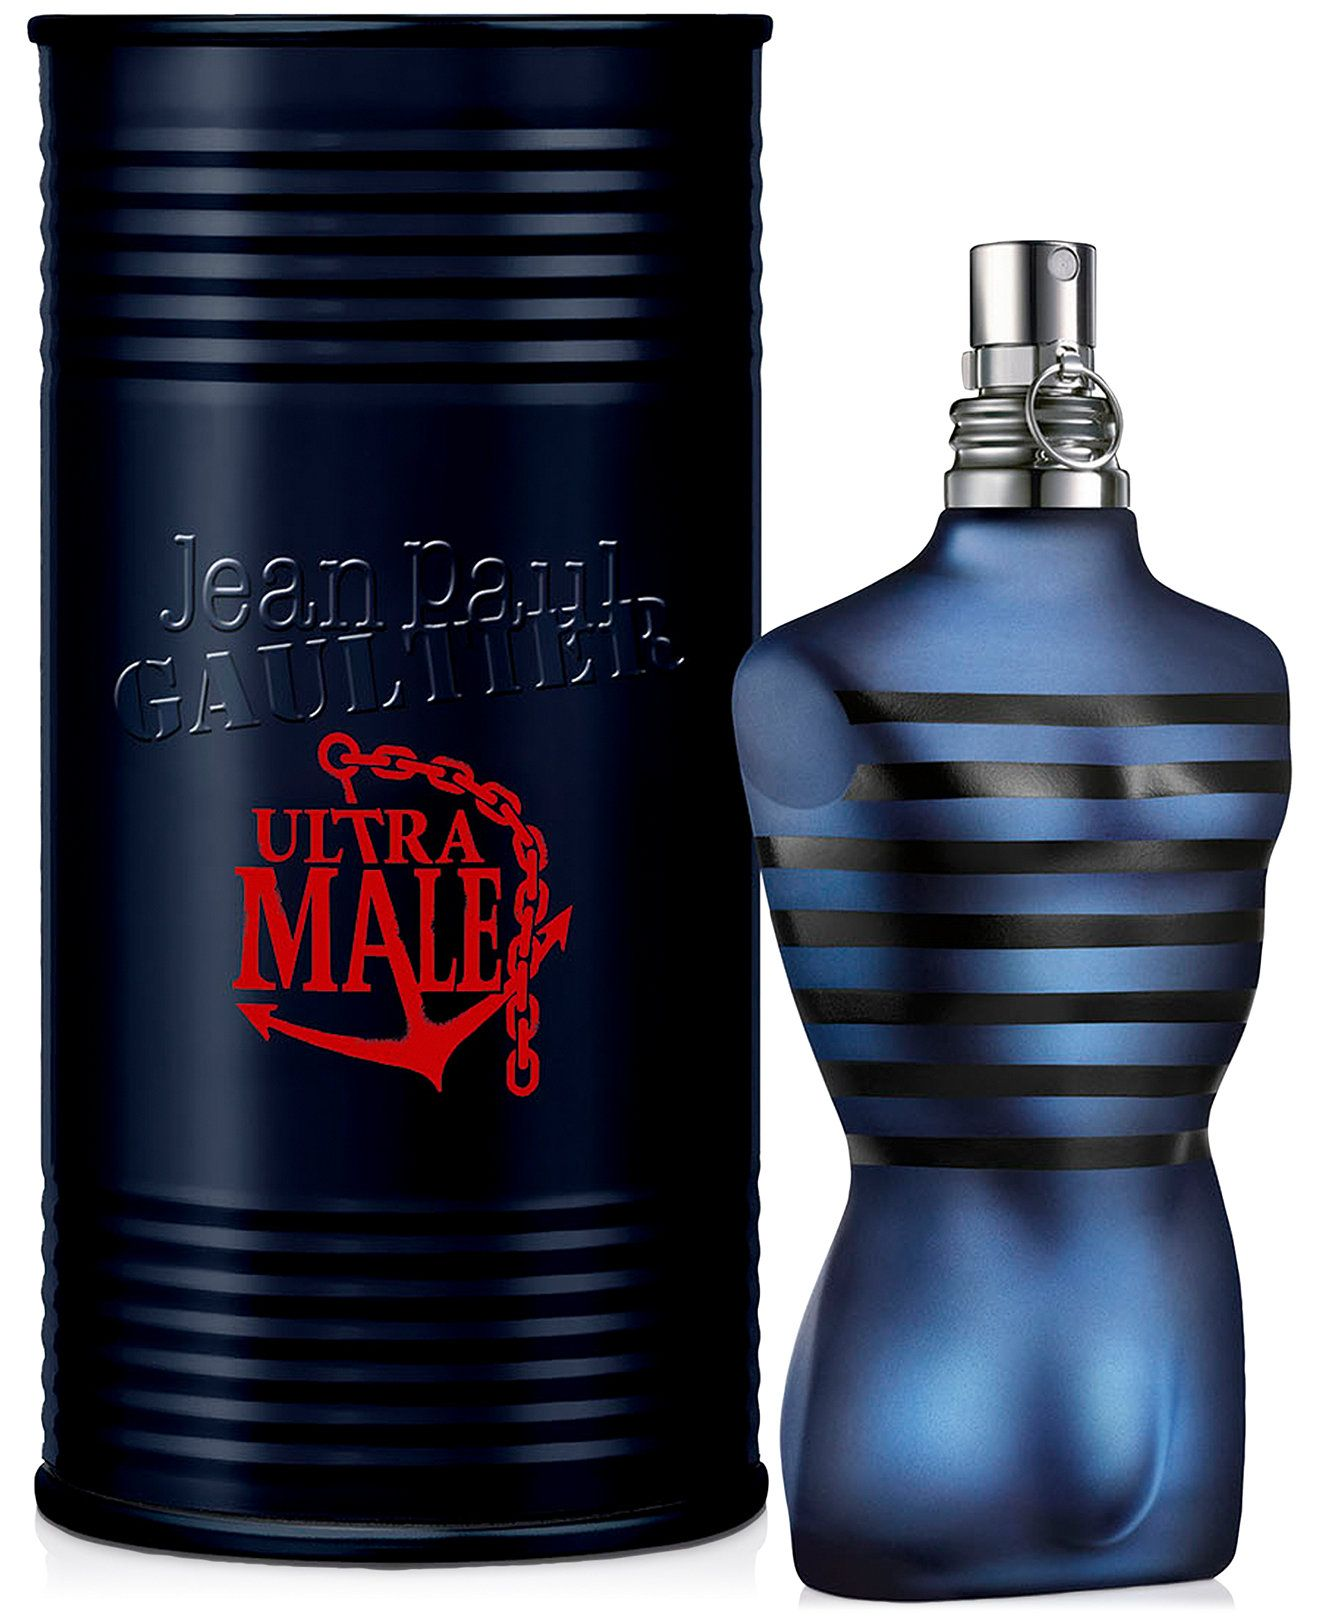 Jean paul gaultier ultra male fragrance collection - Jean paul gaultier puissance 2 ...